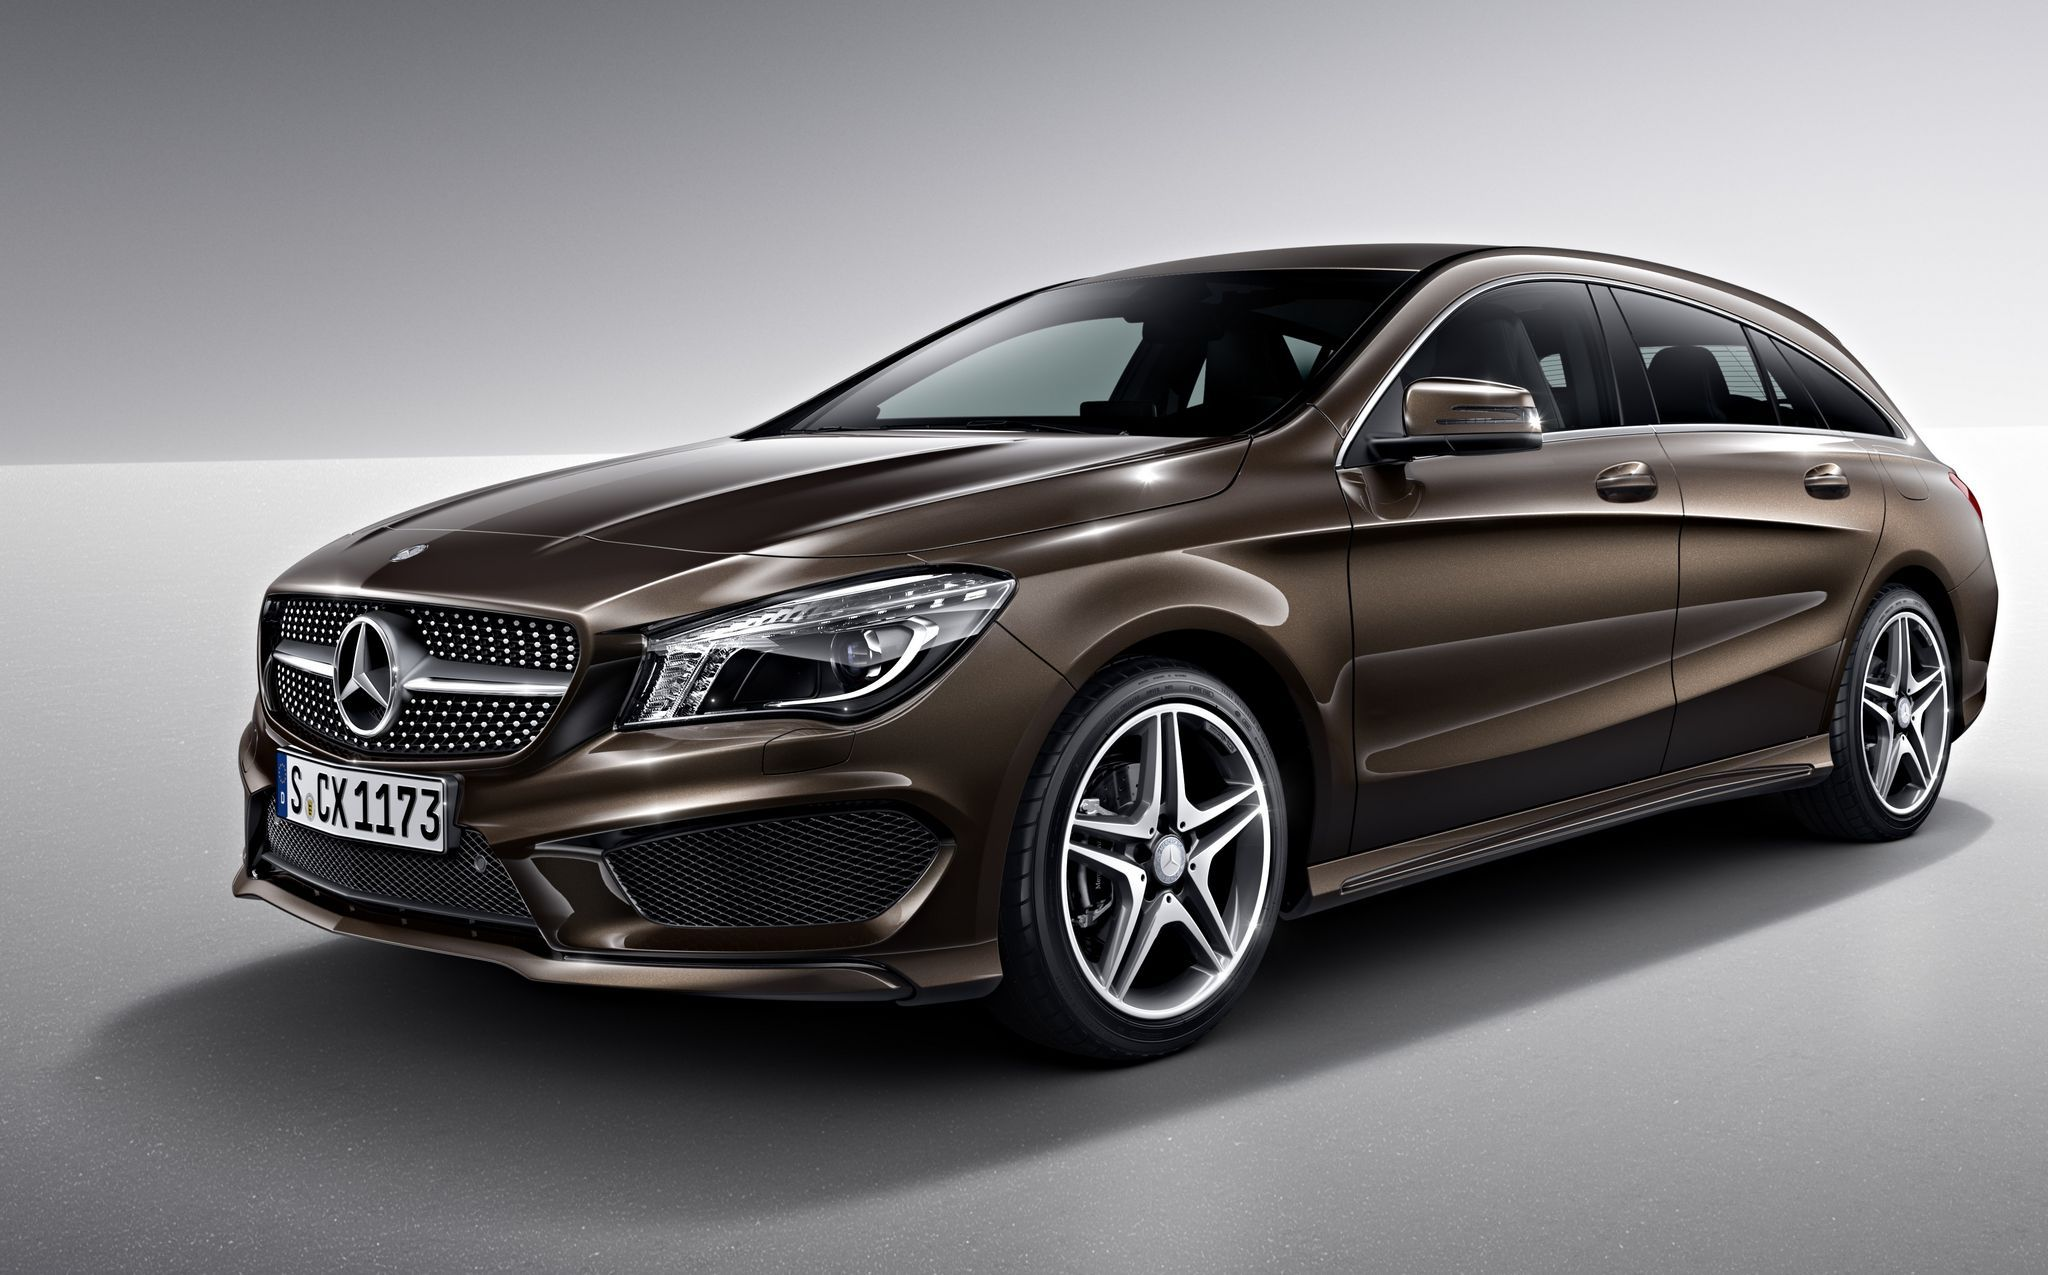 zo ziet de mercedes cla shooting brake er als amg line uit. Black Bedroom Furniture Sets. Home Design Ideas